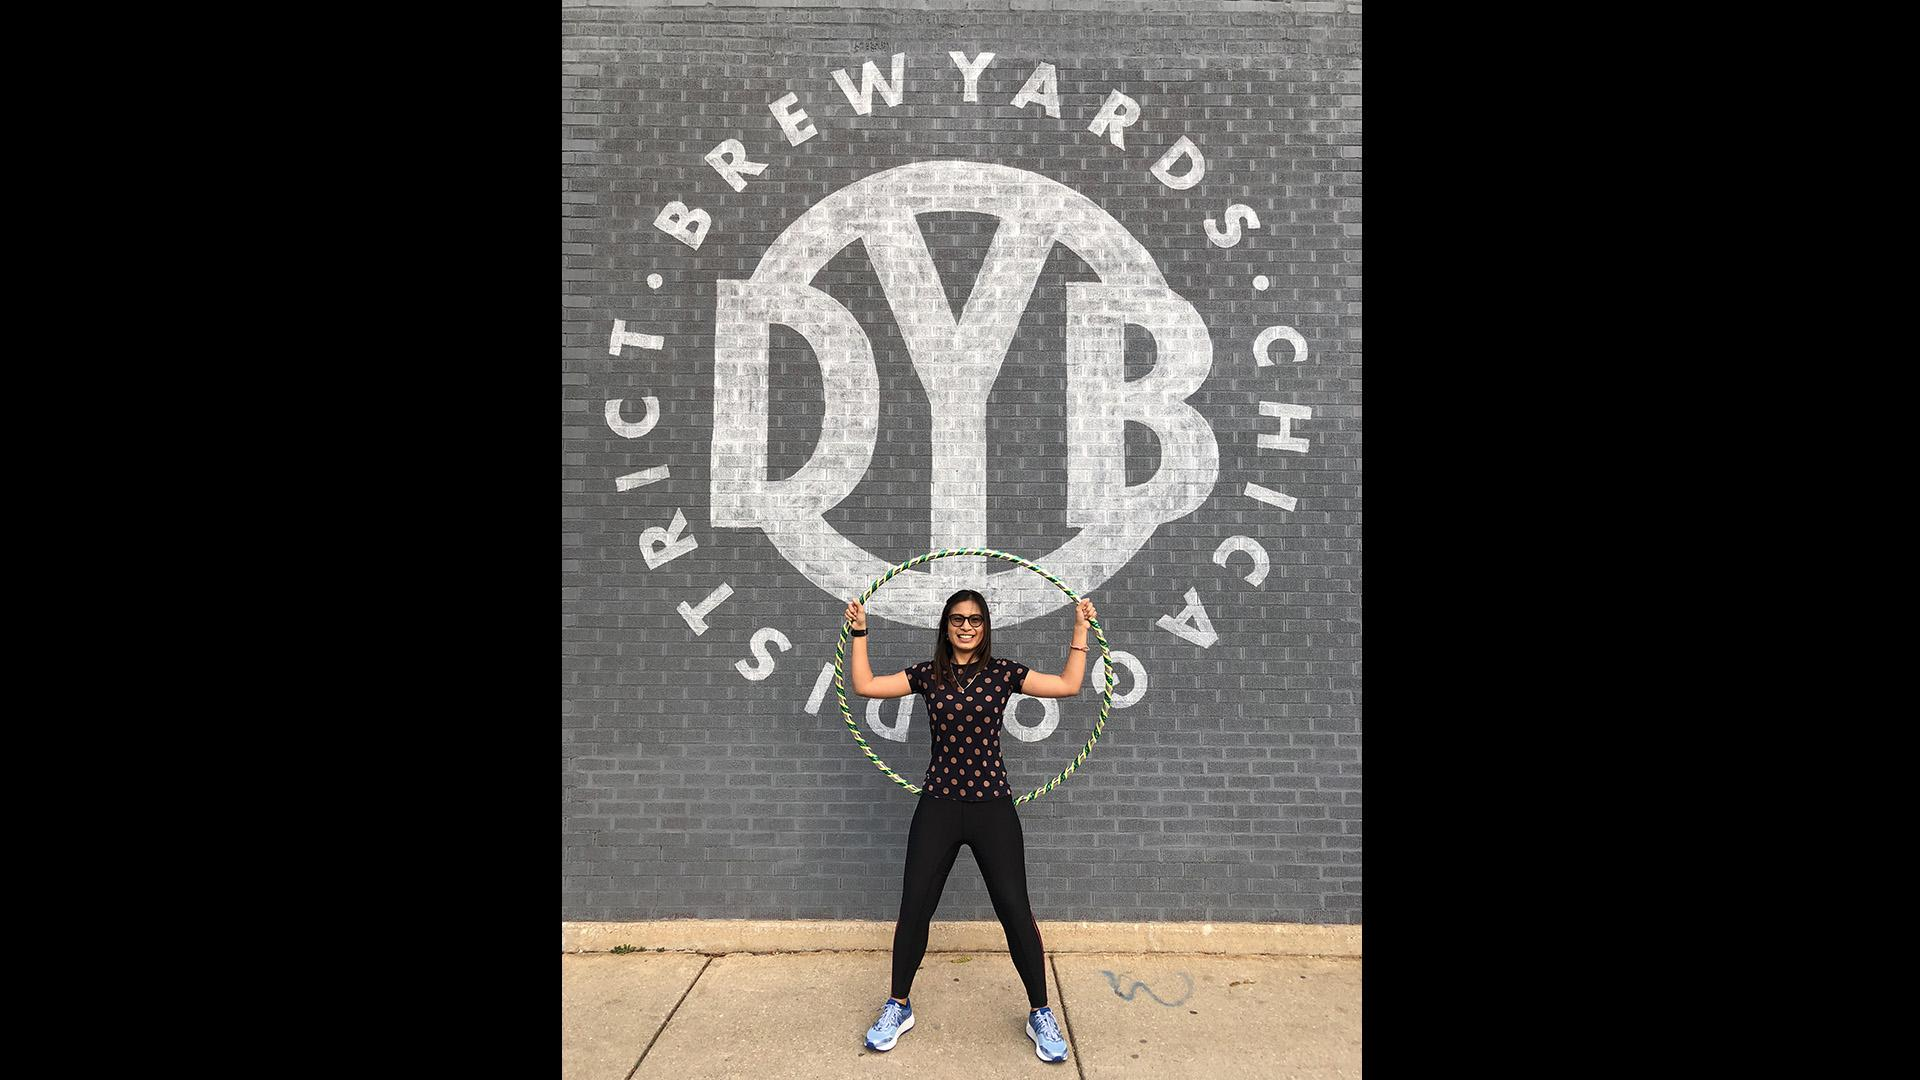 Jenny Doan will hula-hoop at District Brew Yards during her Guinness World Record attempt. (Courtesy of District Brew Yards)